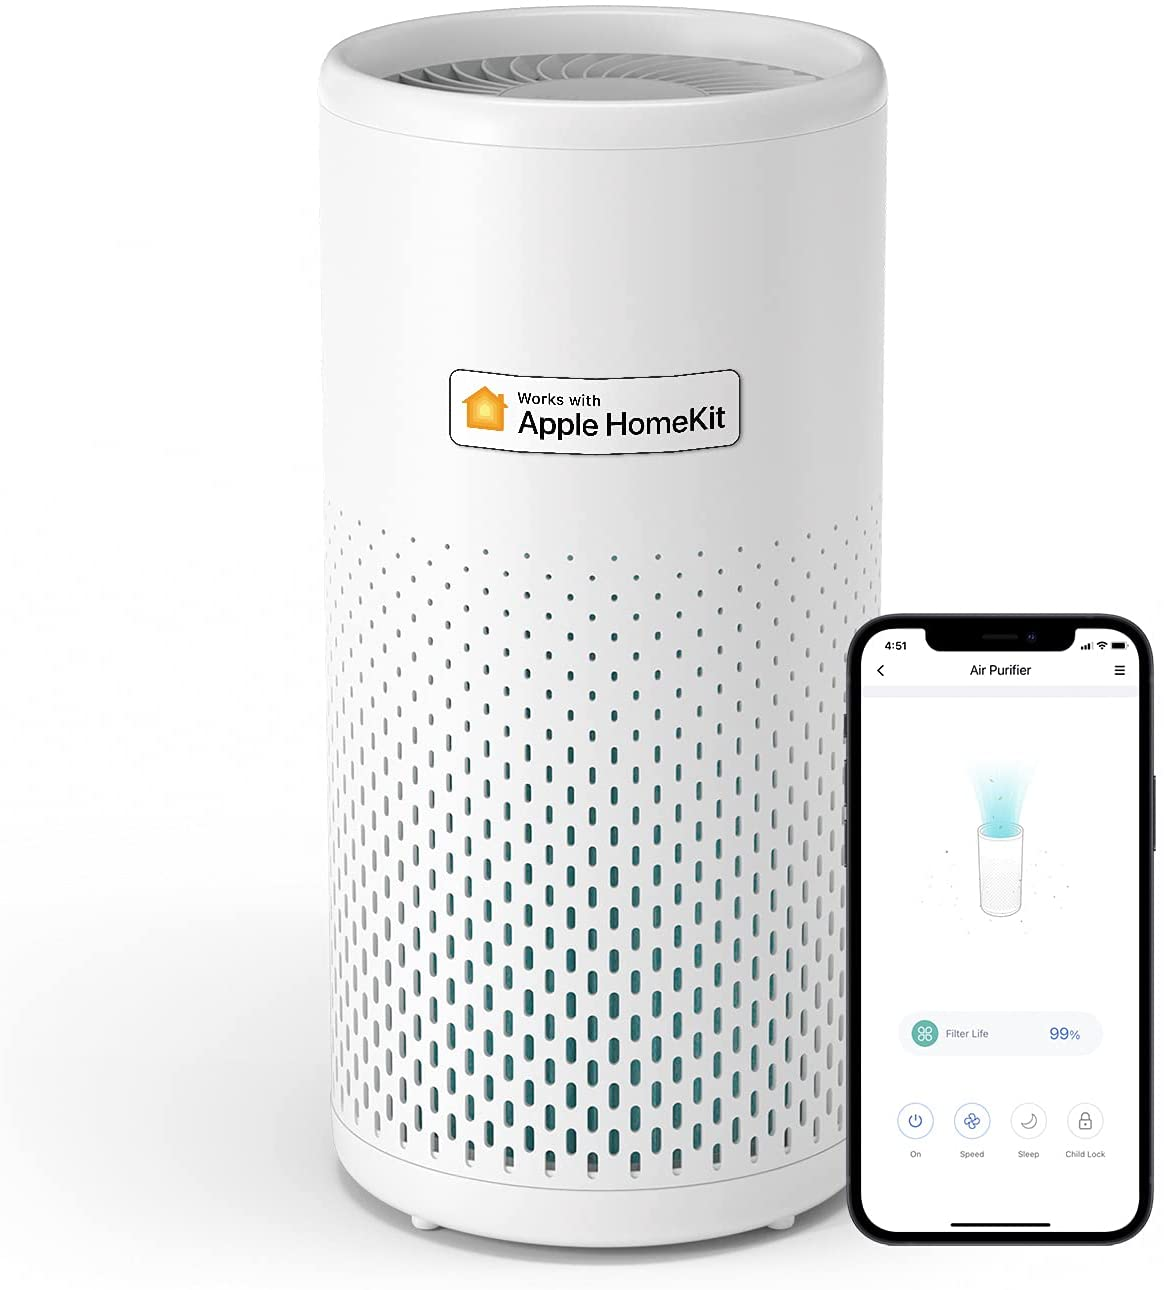 Control the new Meross accessible Wi-Fi air purifier with HomeKit